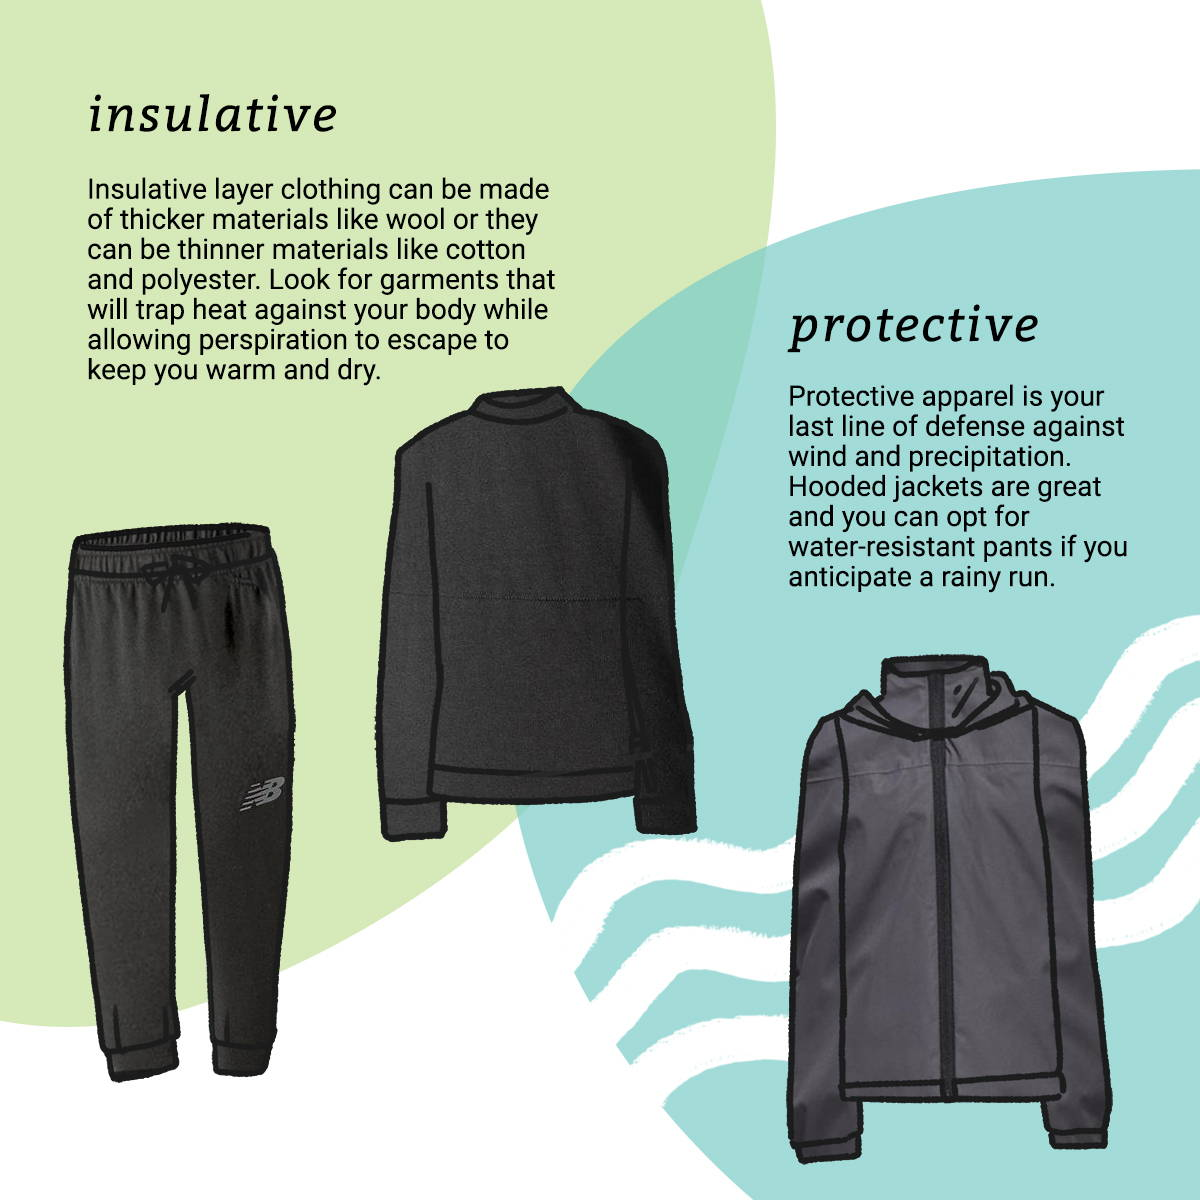 Insulative layer clothing can be made of thicker materials like wool or they can be thinner materials like cotton and polyester. Look for garments that will trap heat against your body while allowing perspiration to escape to keep you warm and dry.